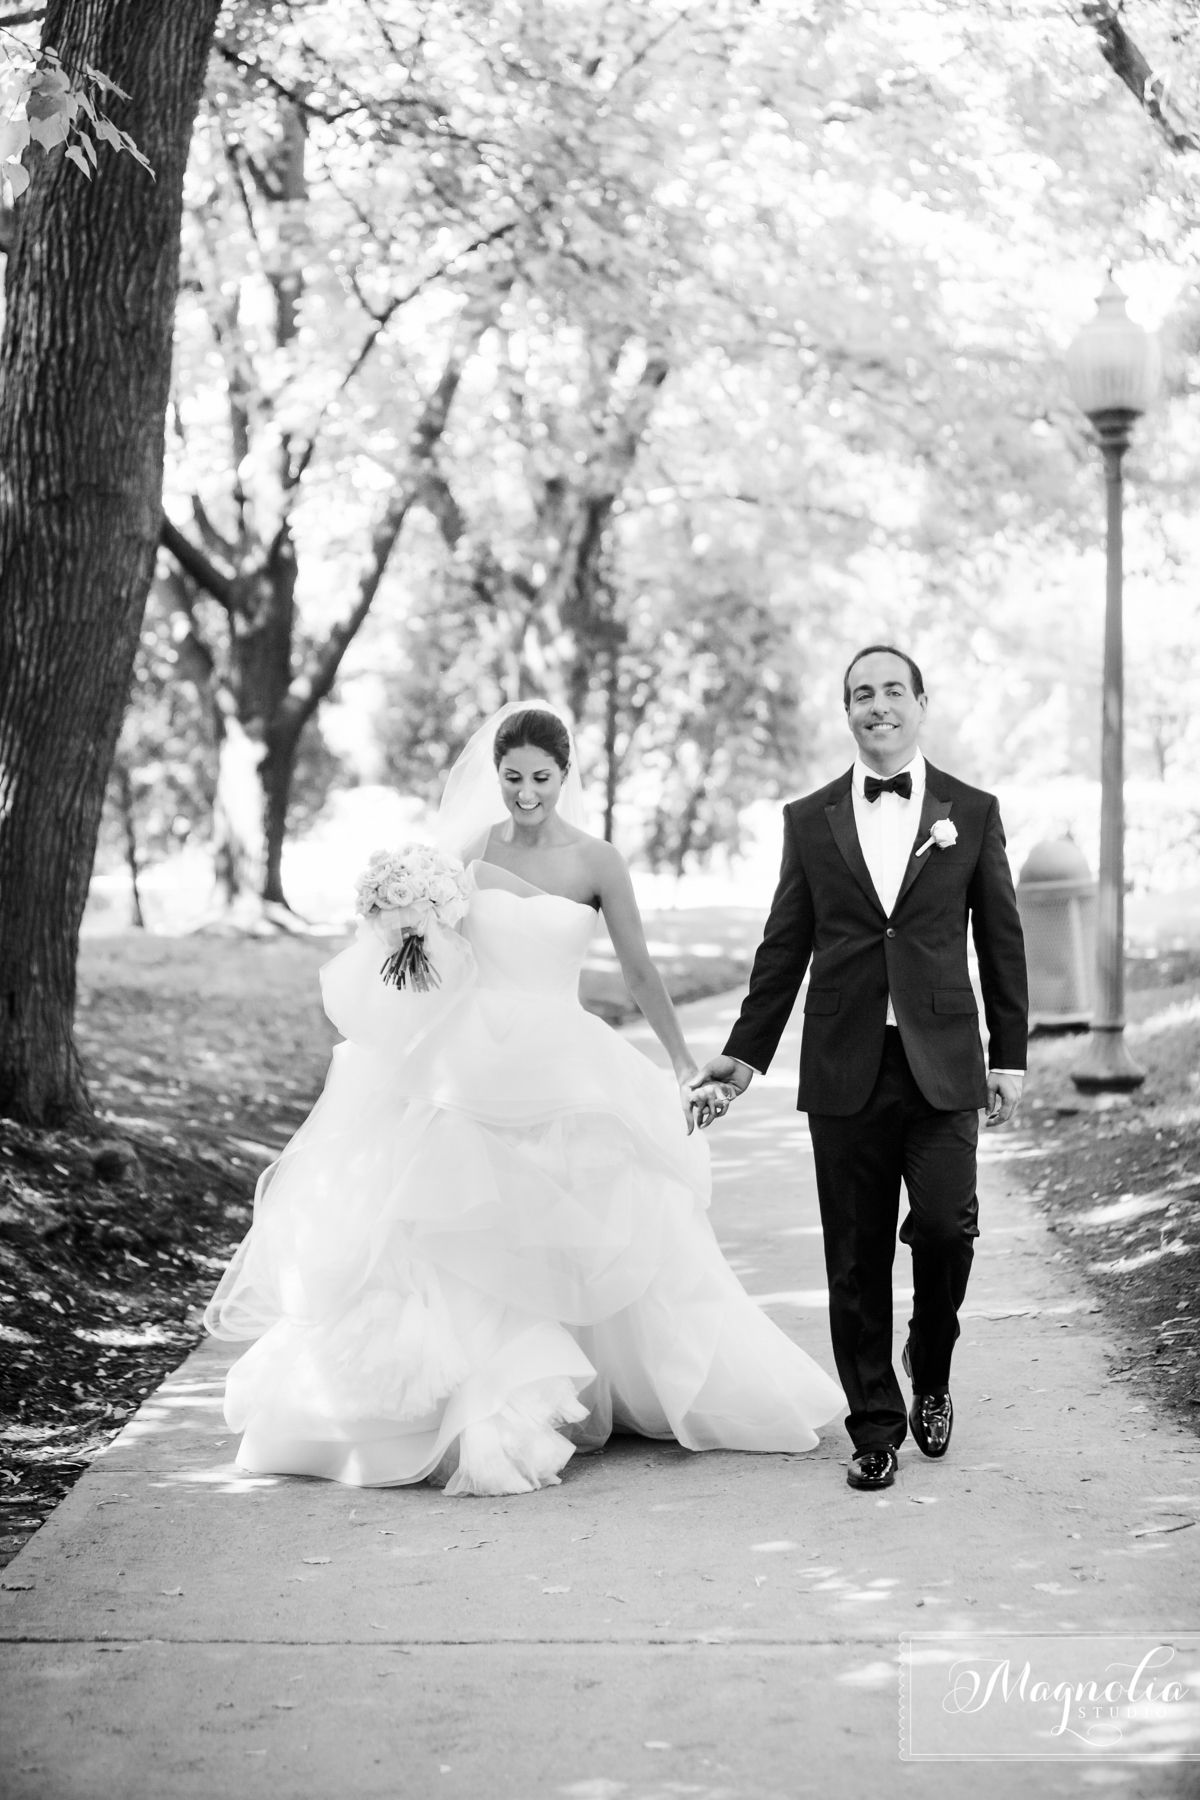 Magnolia Studio Couples www.weddingsbymagnolia.com